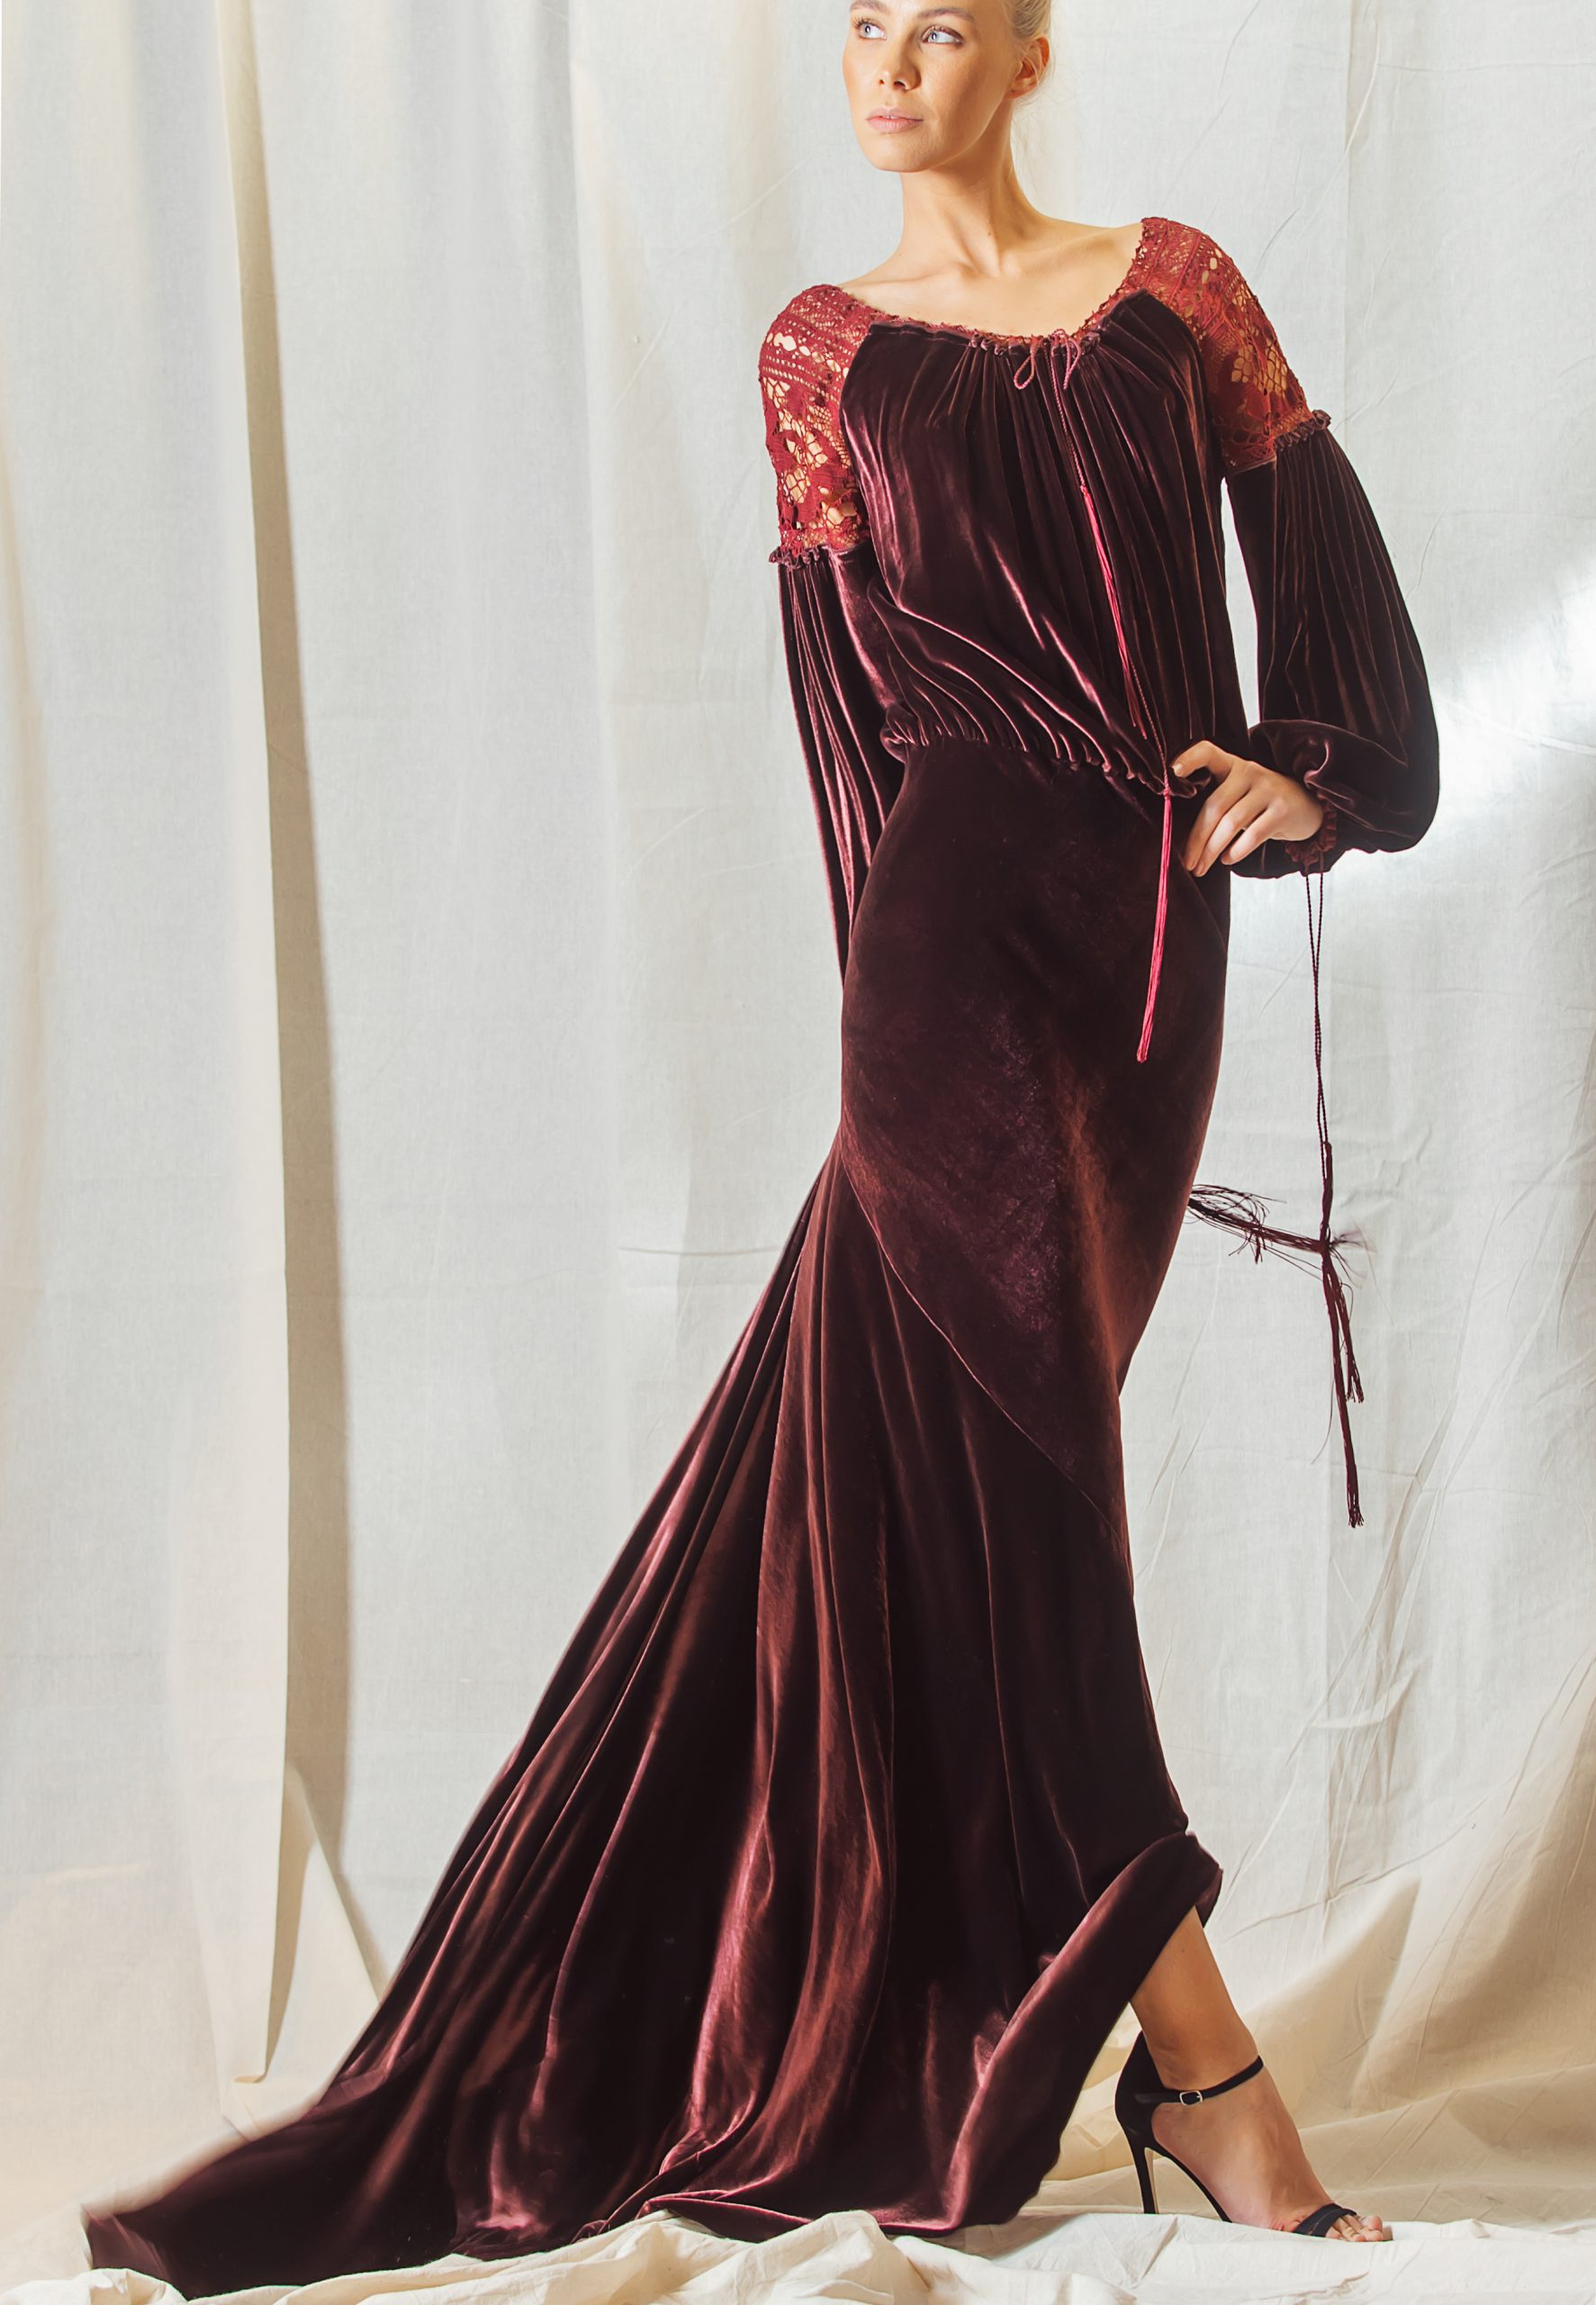 Burgundy Velour dress with lace